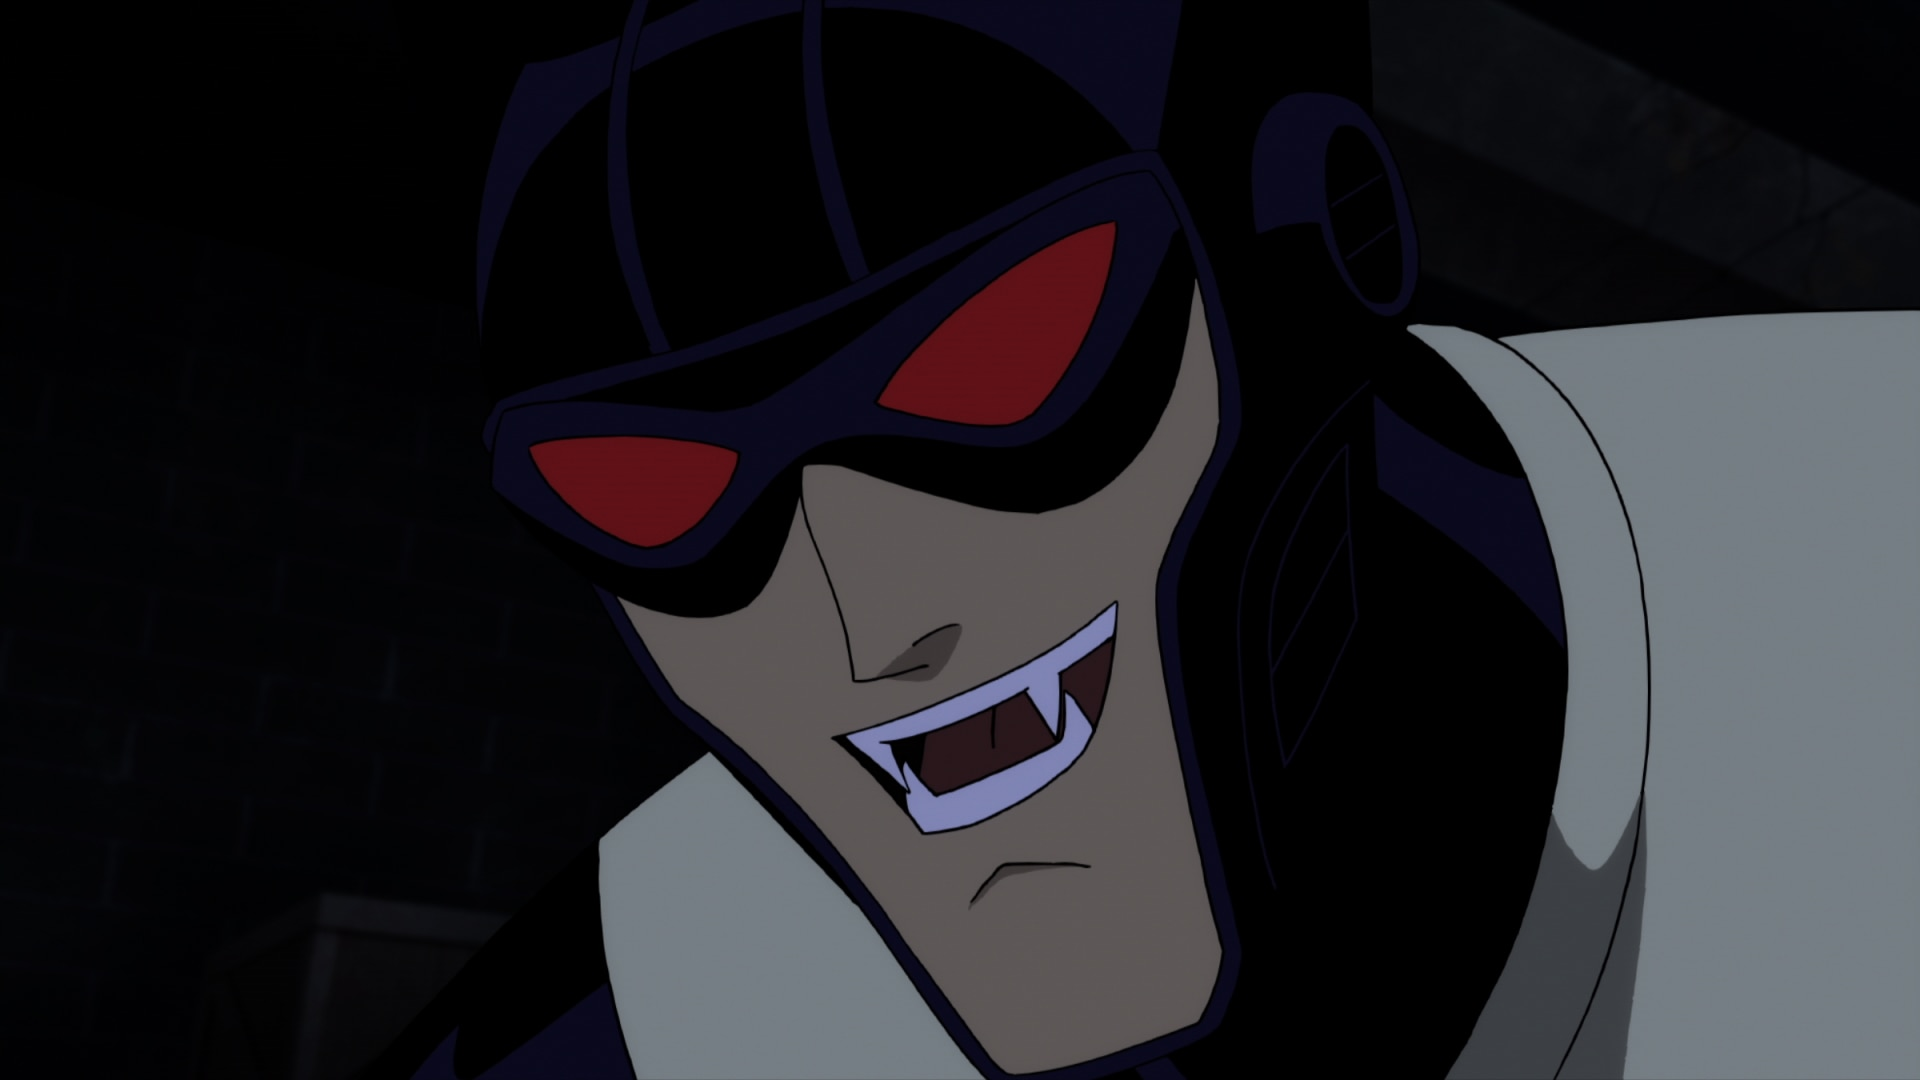 See Justice League: Gods and Monsters Chronicles Episode 1